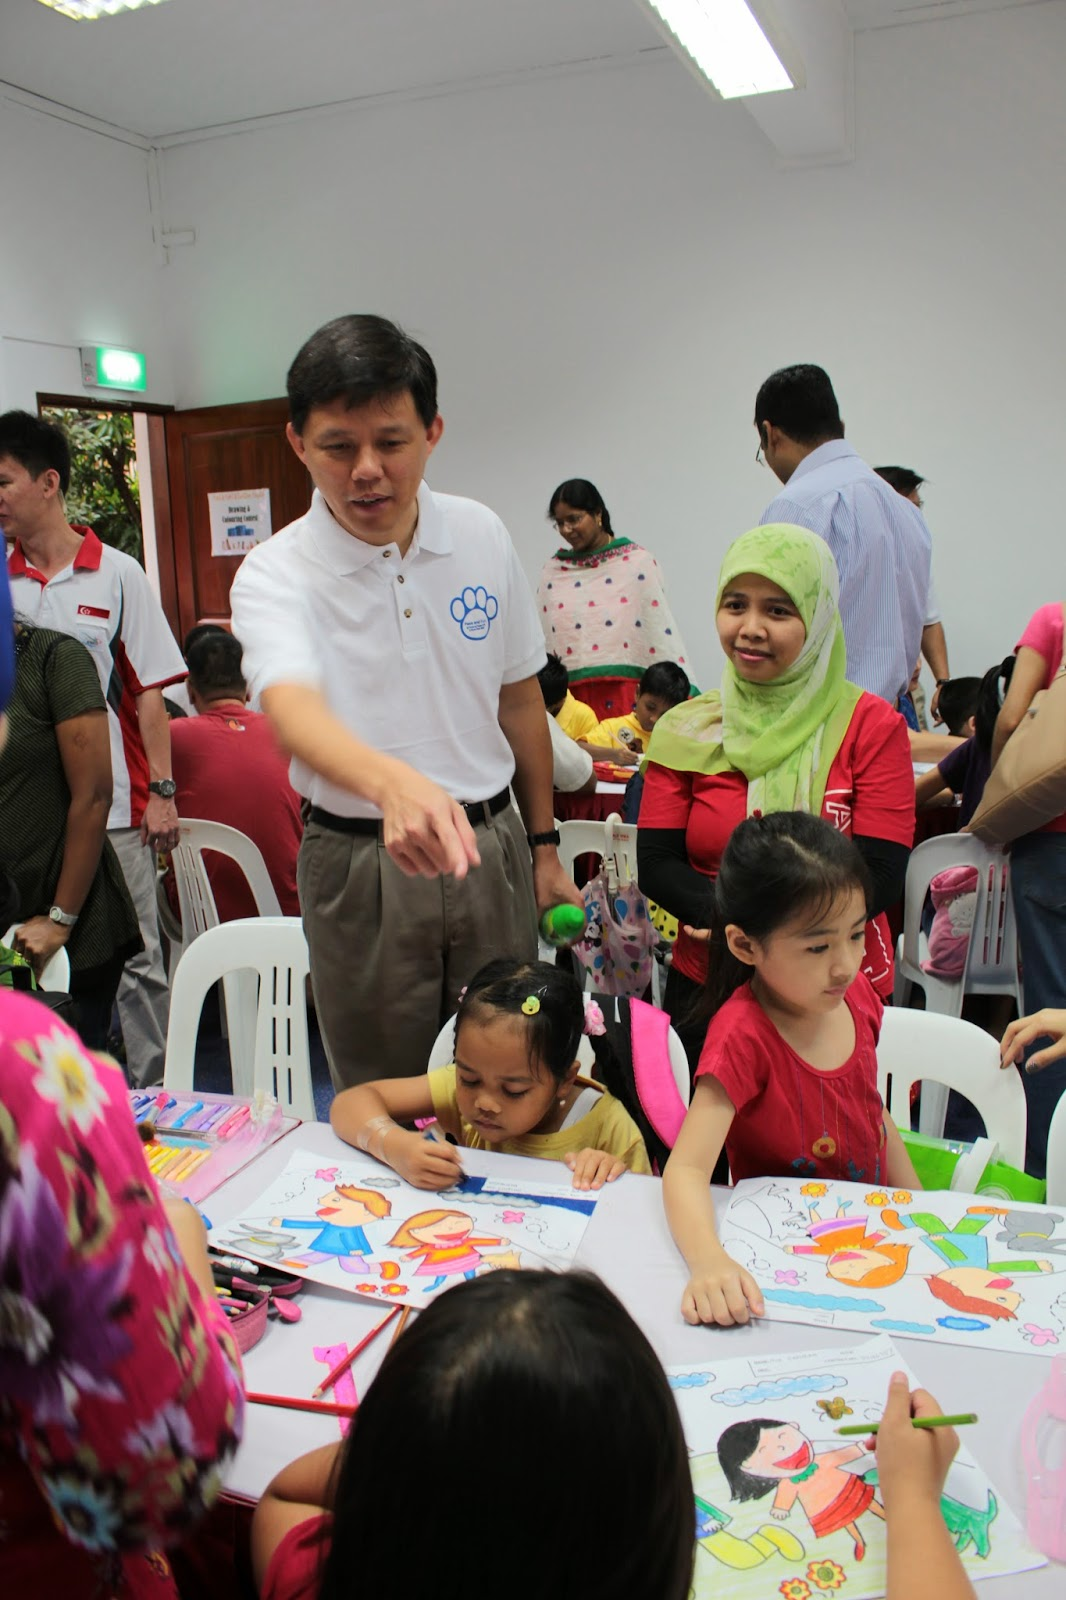 Mr. Chan Chun Sing, Minister for Social and Family Development